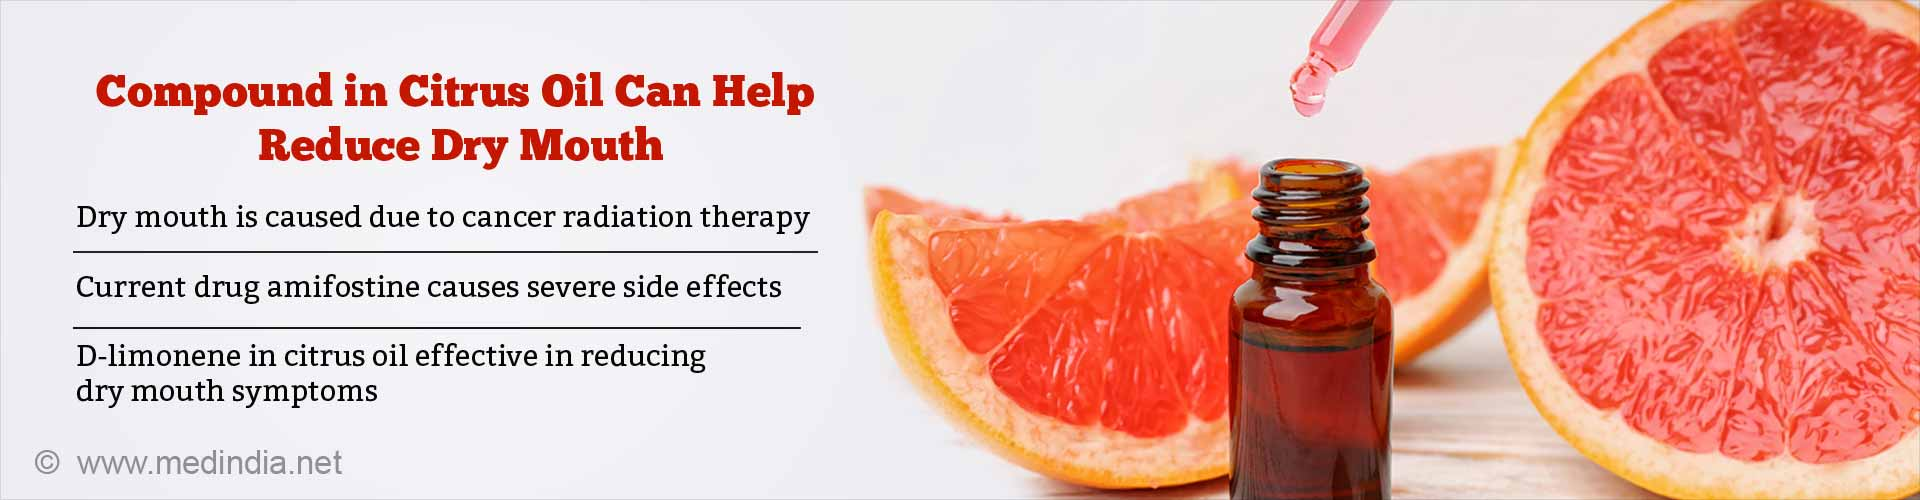 D-limonene Found in Citrus Oil Could Reduce Dry Mouth in Cancer Patients